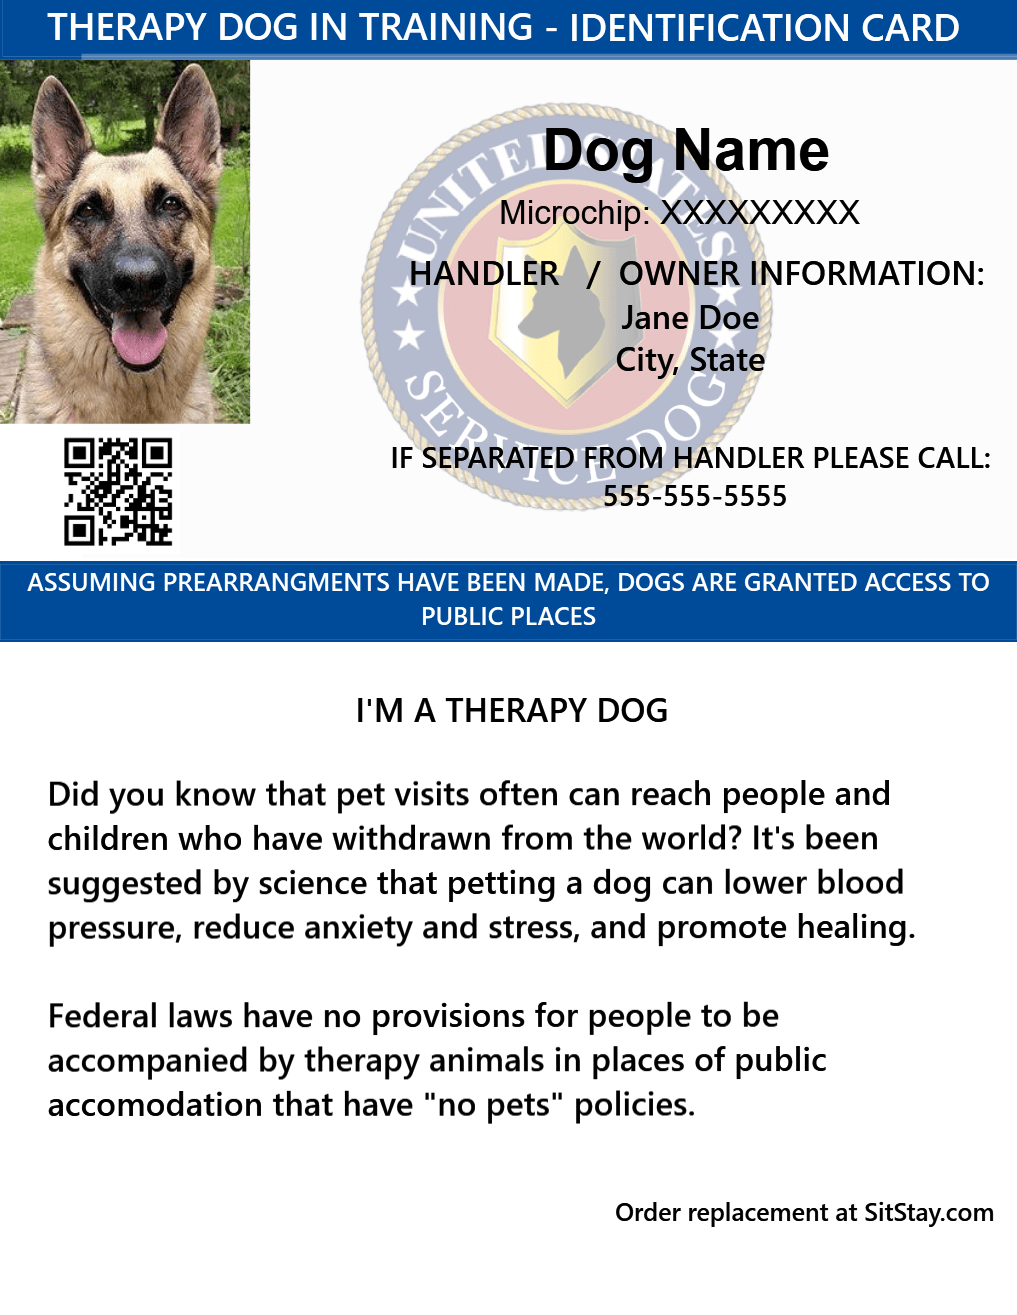 ID Card - Therapy Dog In Training